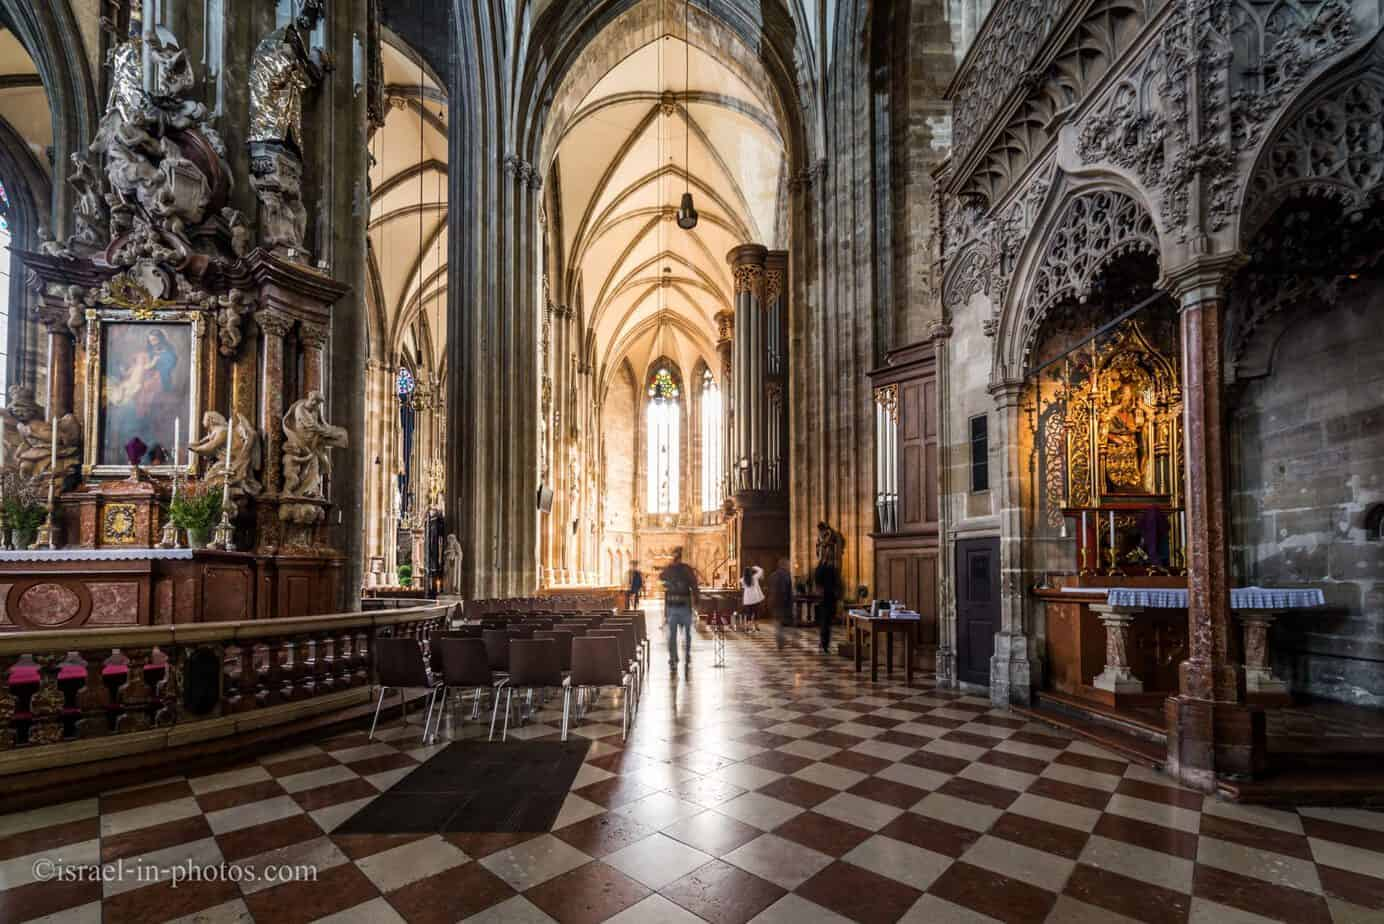 St. Stephen's Cathedral in Vienna, Austria's capital